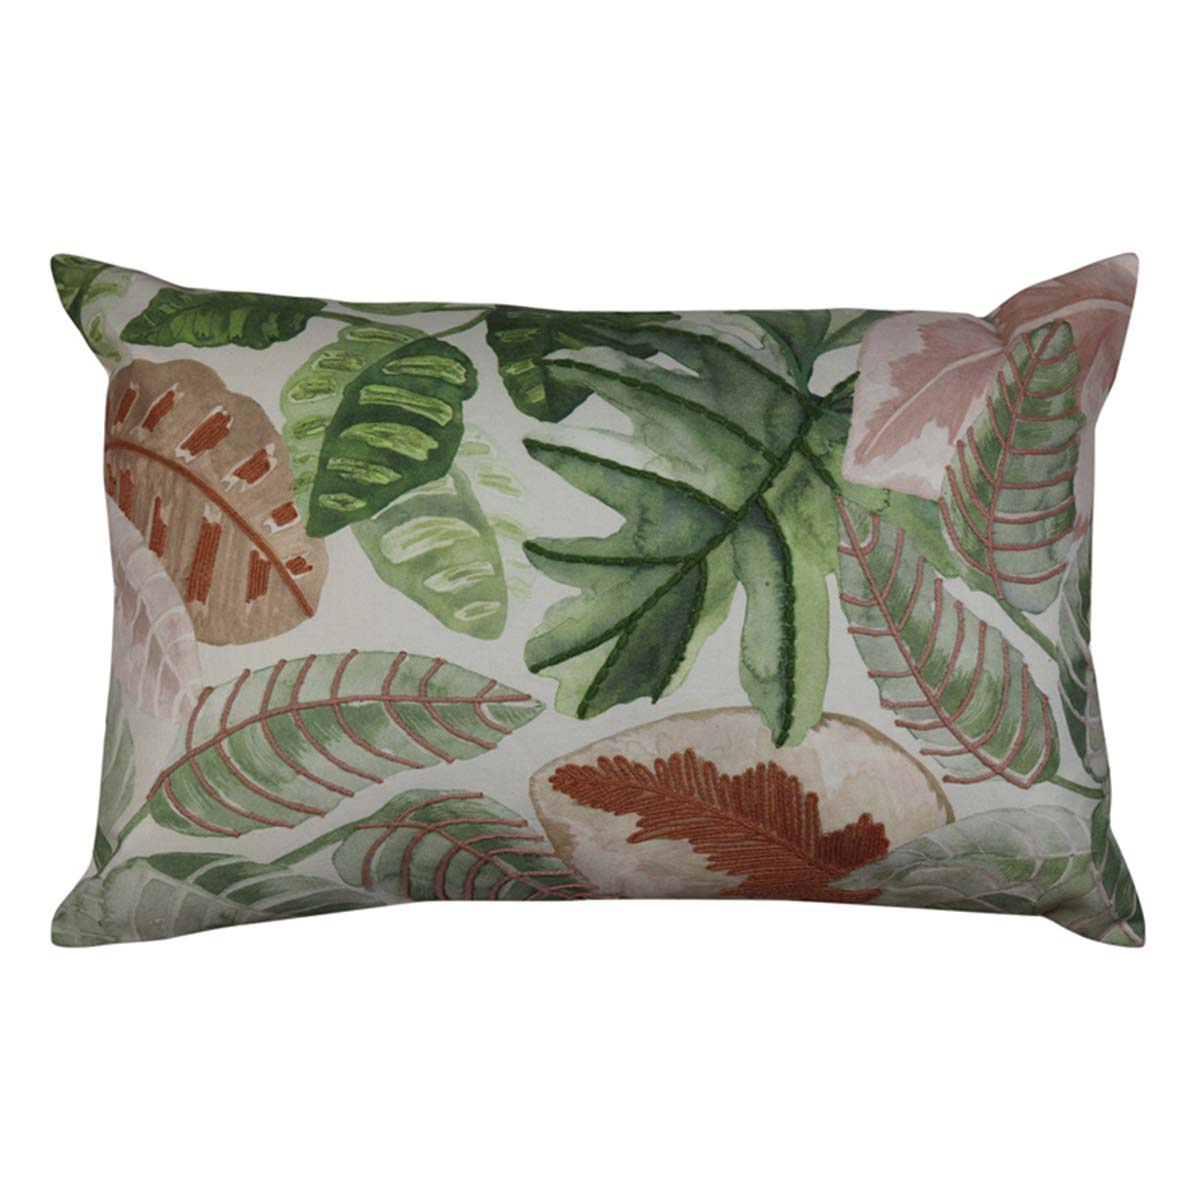 BORNEO CUSHION 60X40CM in green/pink